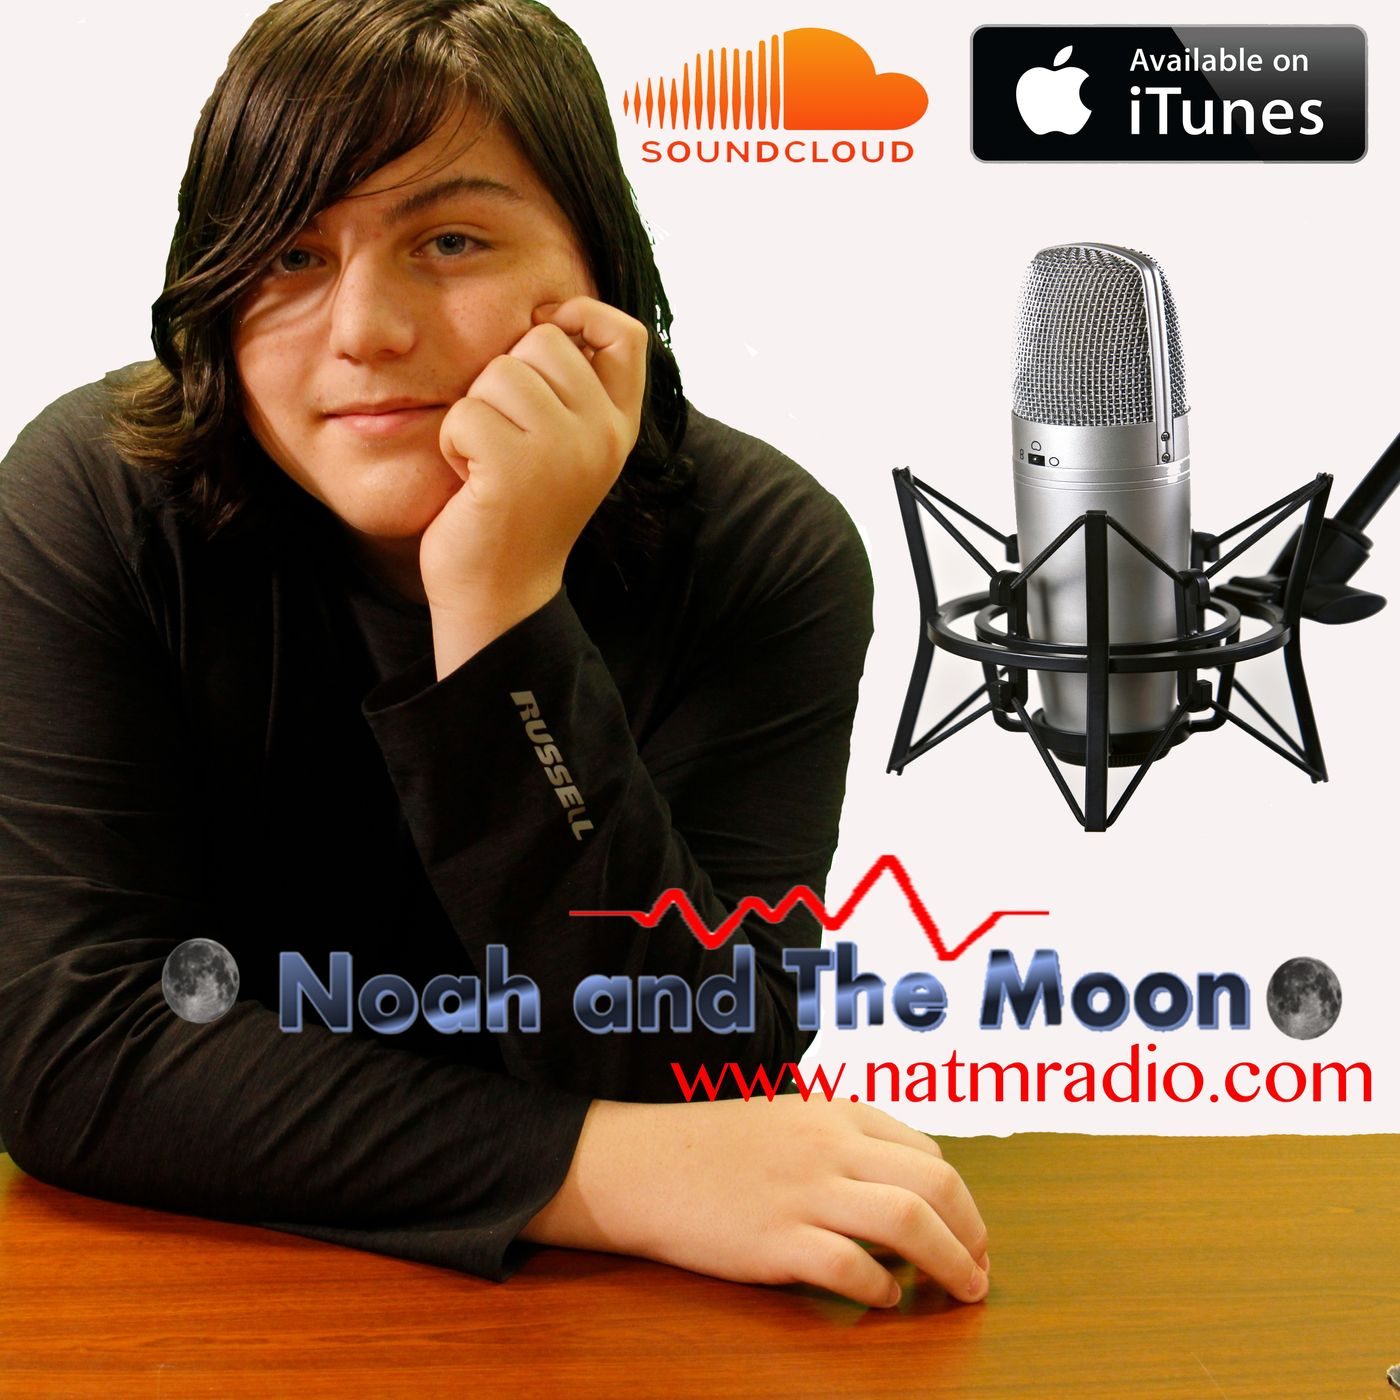 Noah And The Moon Radio!